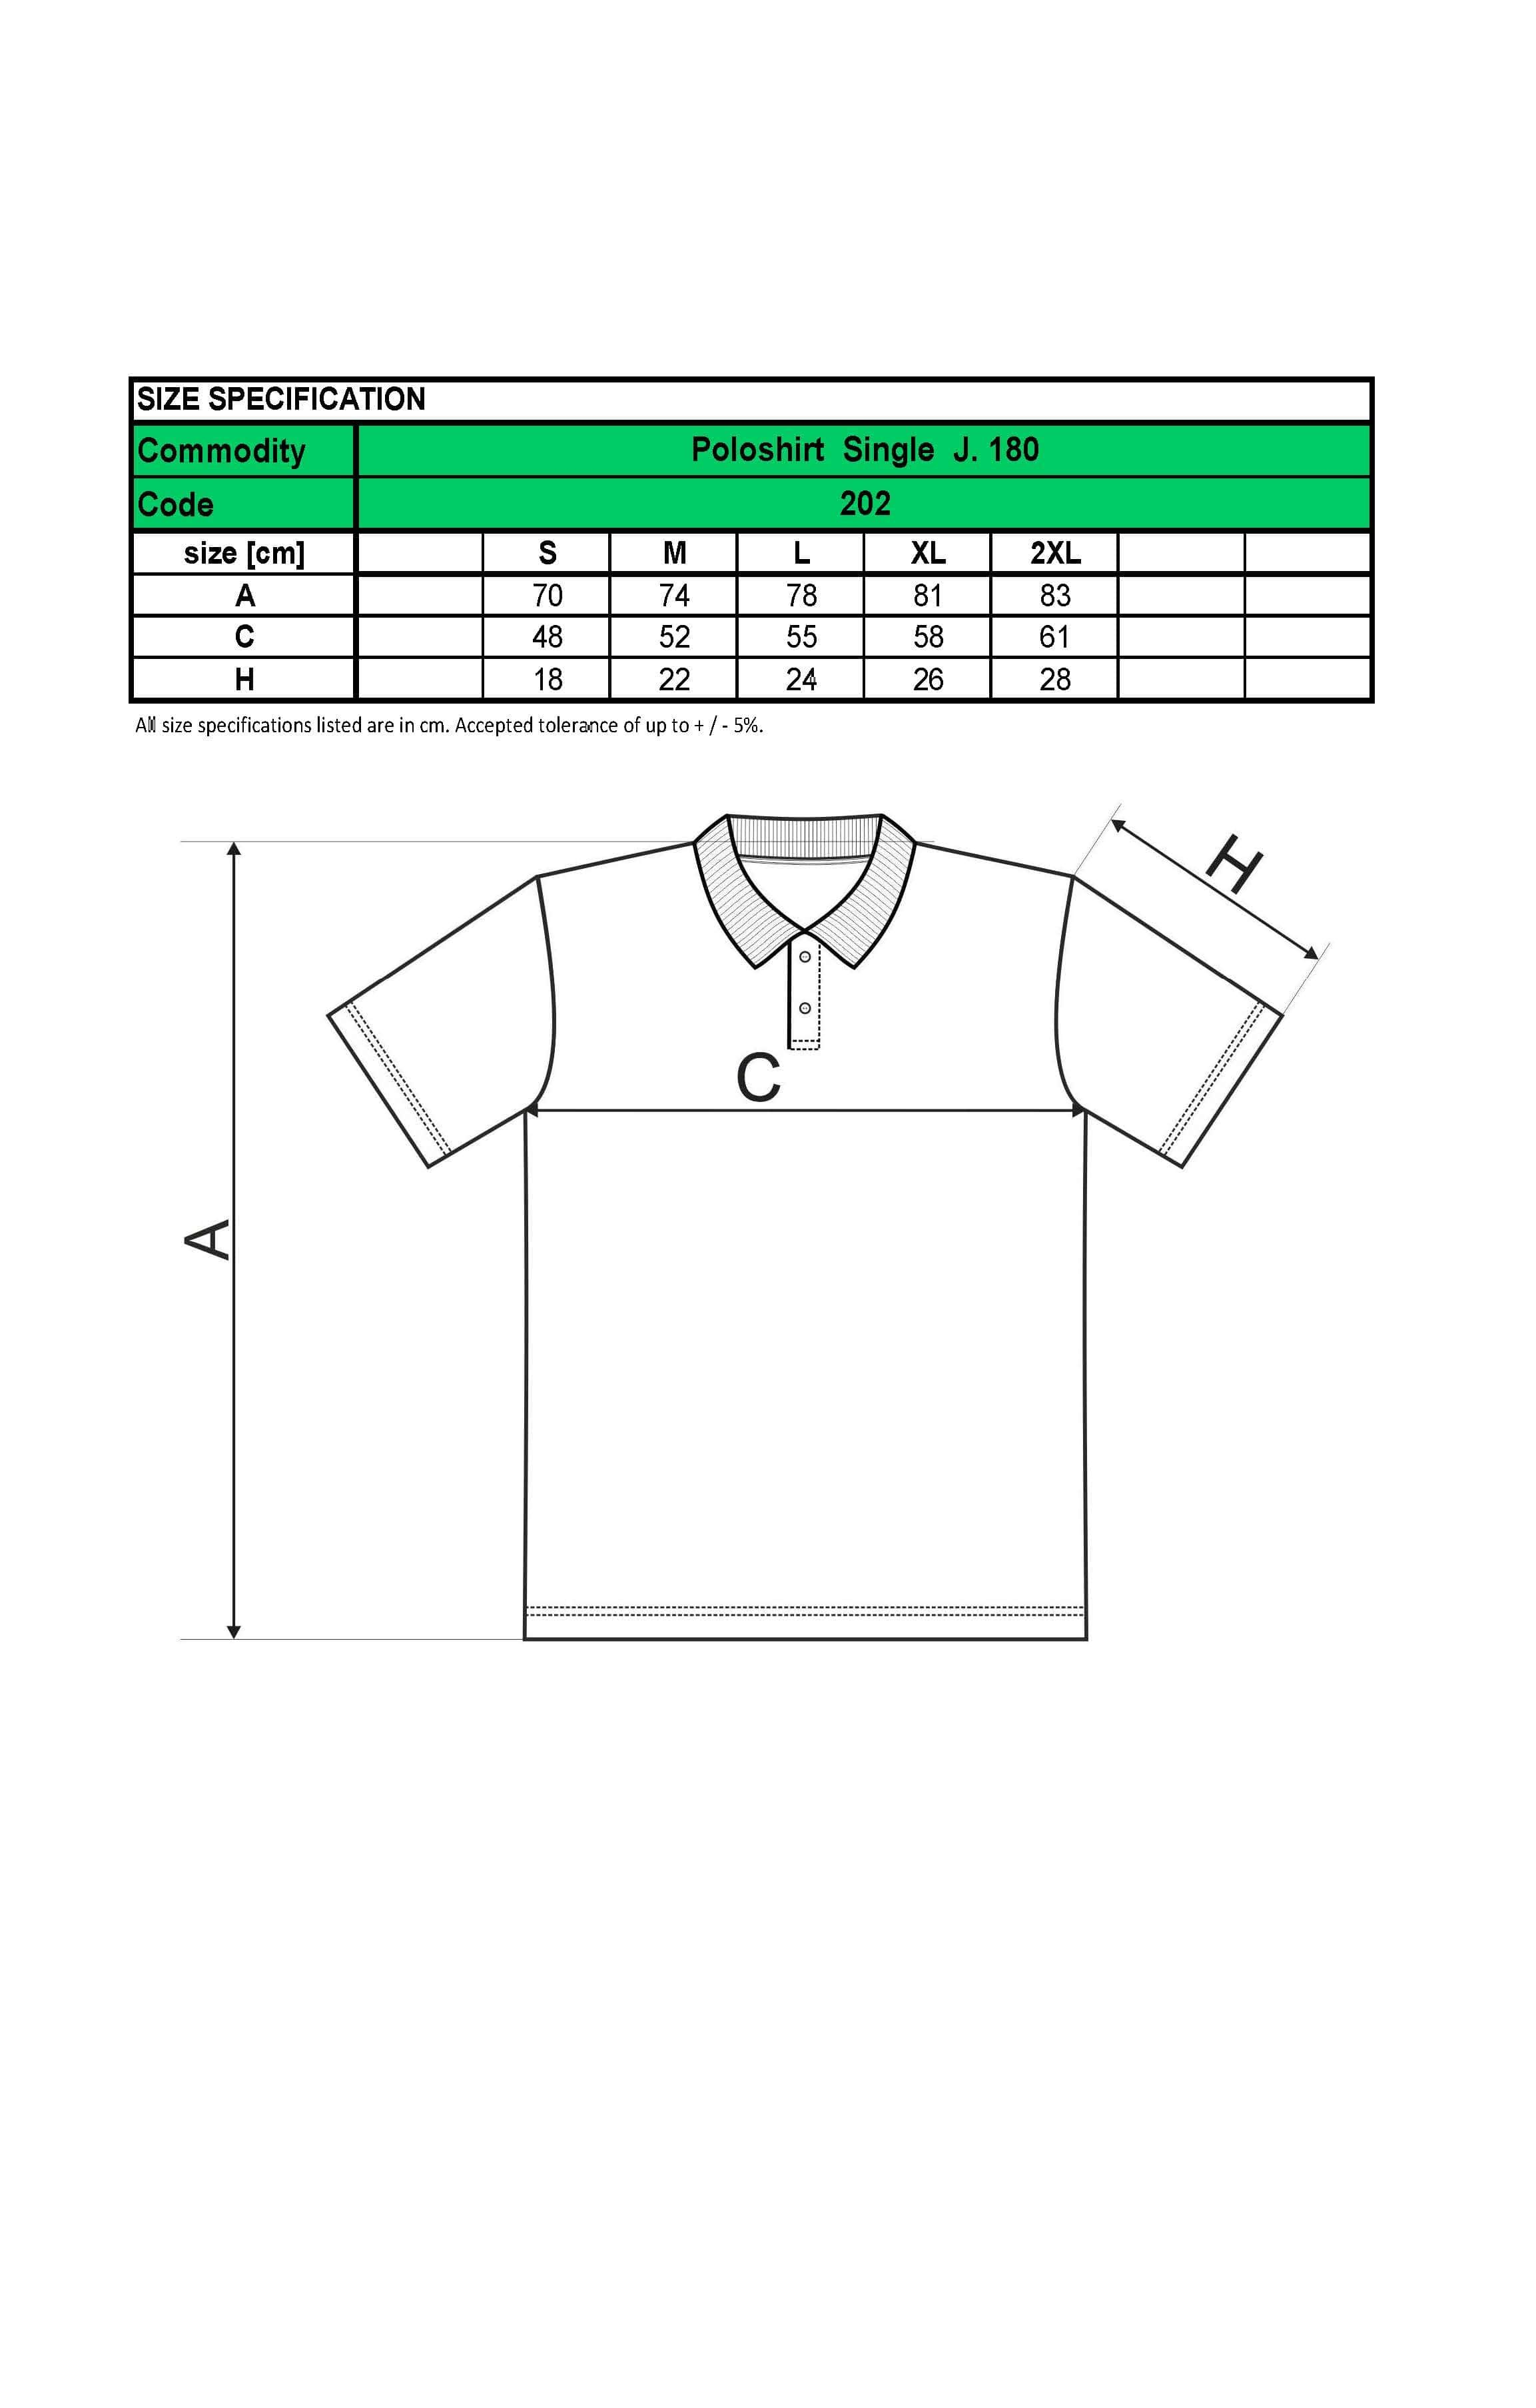 Custom Printed Promotional White Polo Shirts 202 size guide- www.ontimeprint.co.uk